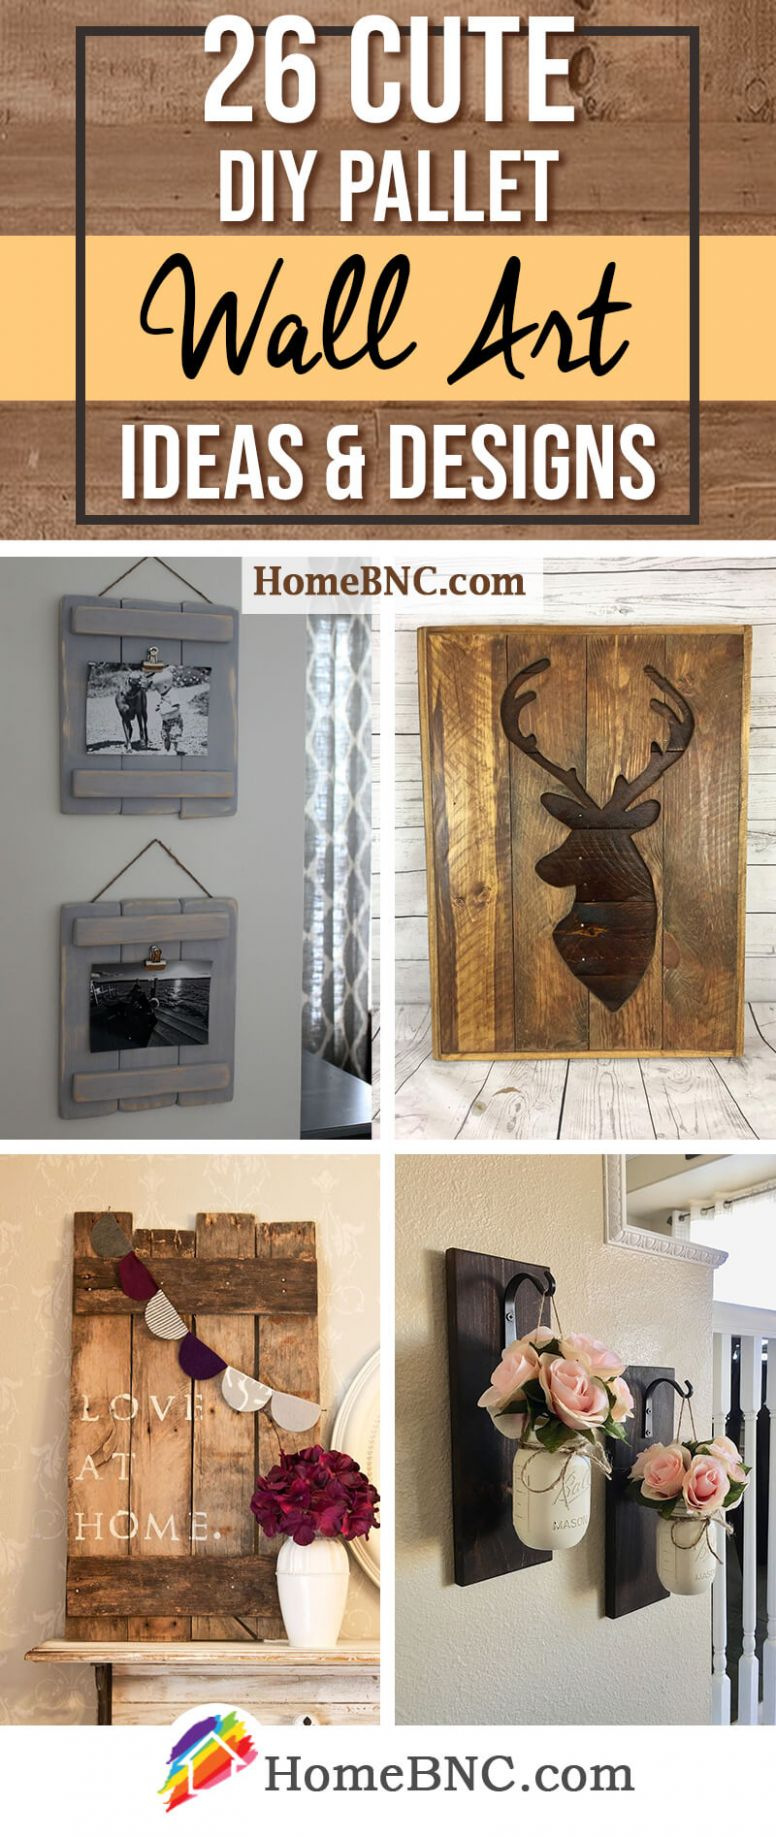 12 Best DIY Pallet Wall Decor and Art Ideas for 12 - diy home decor with pallets